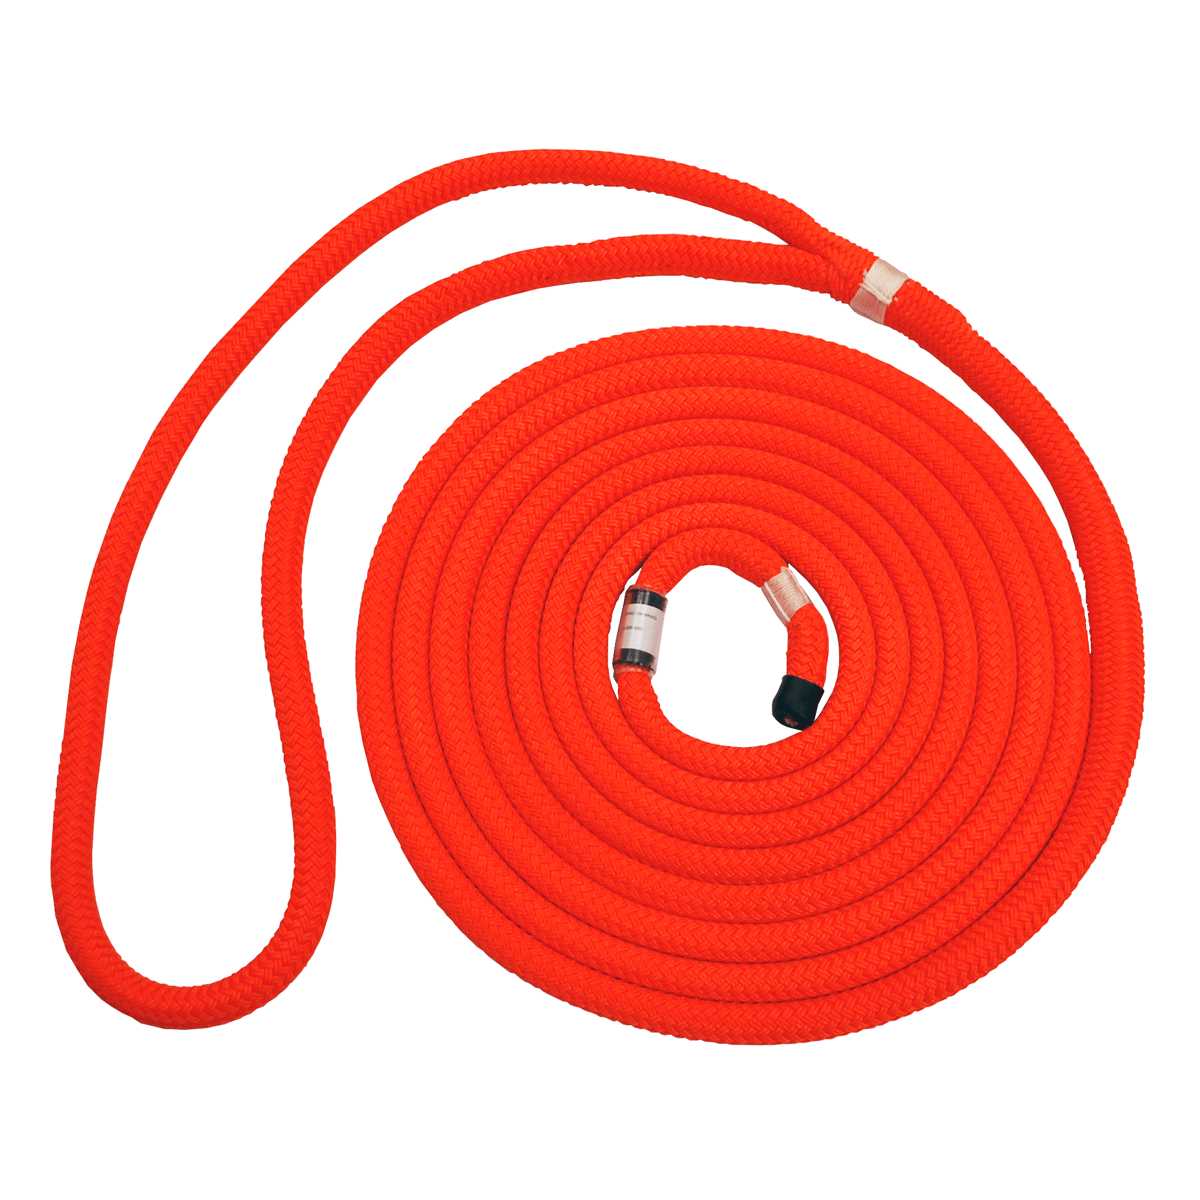 English Braid Alliance Rigging Sling 12mm 5.0m (ORANGE) 50cm Eye